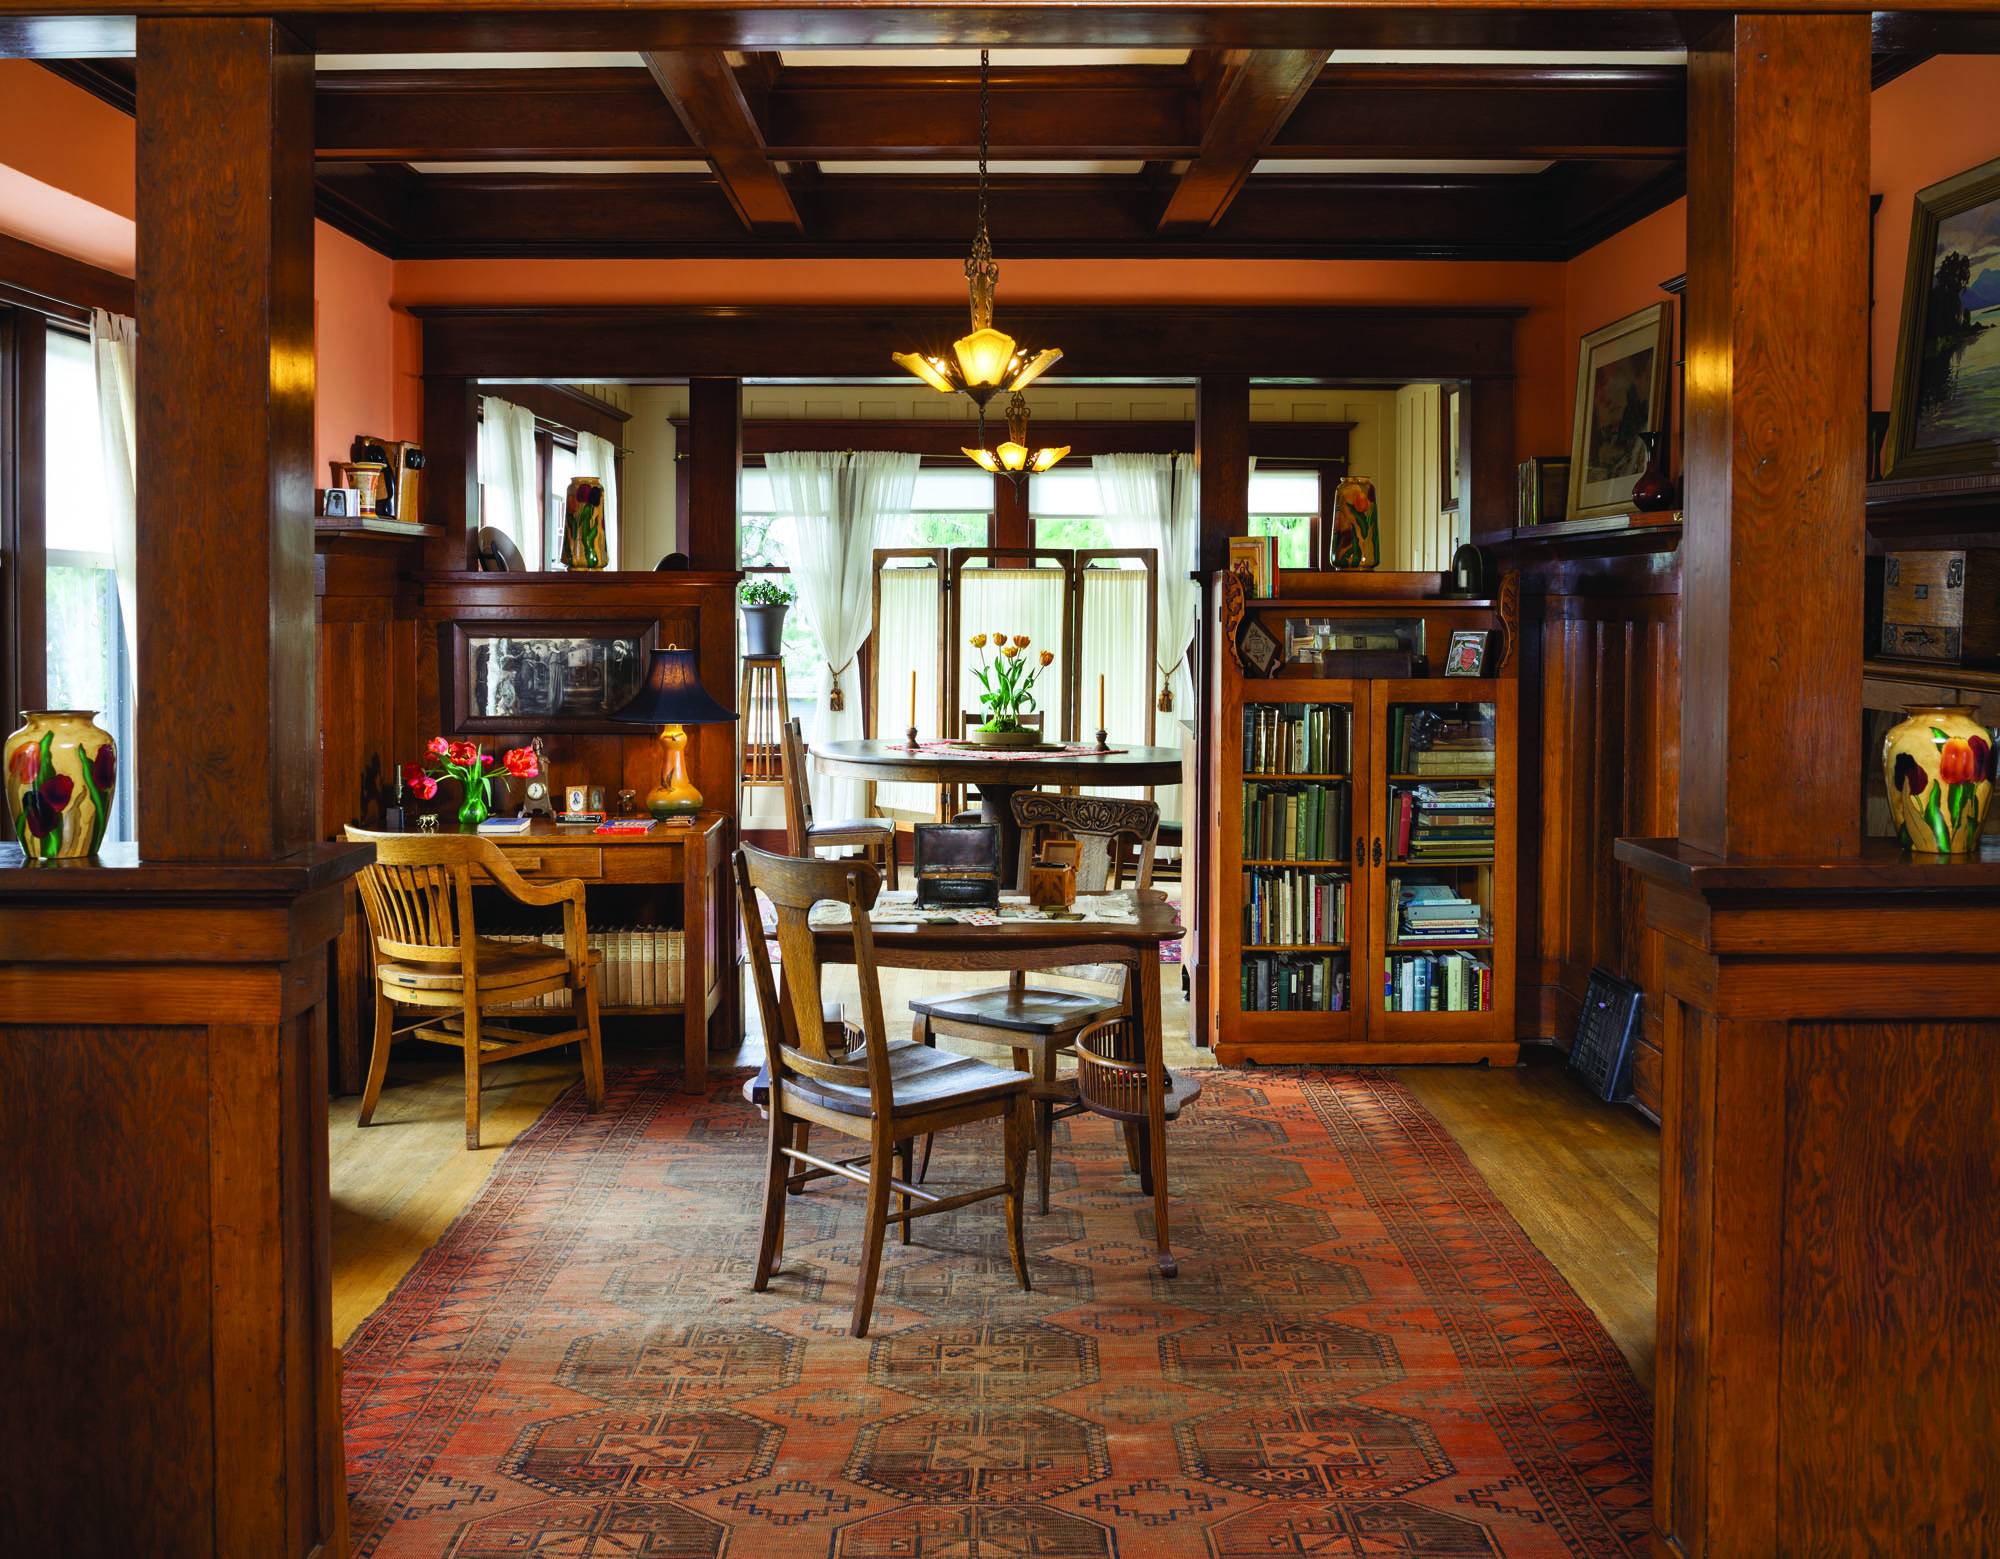 The main spaces flow from the living room to the study and the dining room beyond. Bookcases and desks hold collections of Arts & Crafts ceramics, family mementoes, and vintage books.